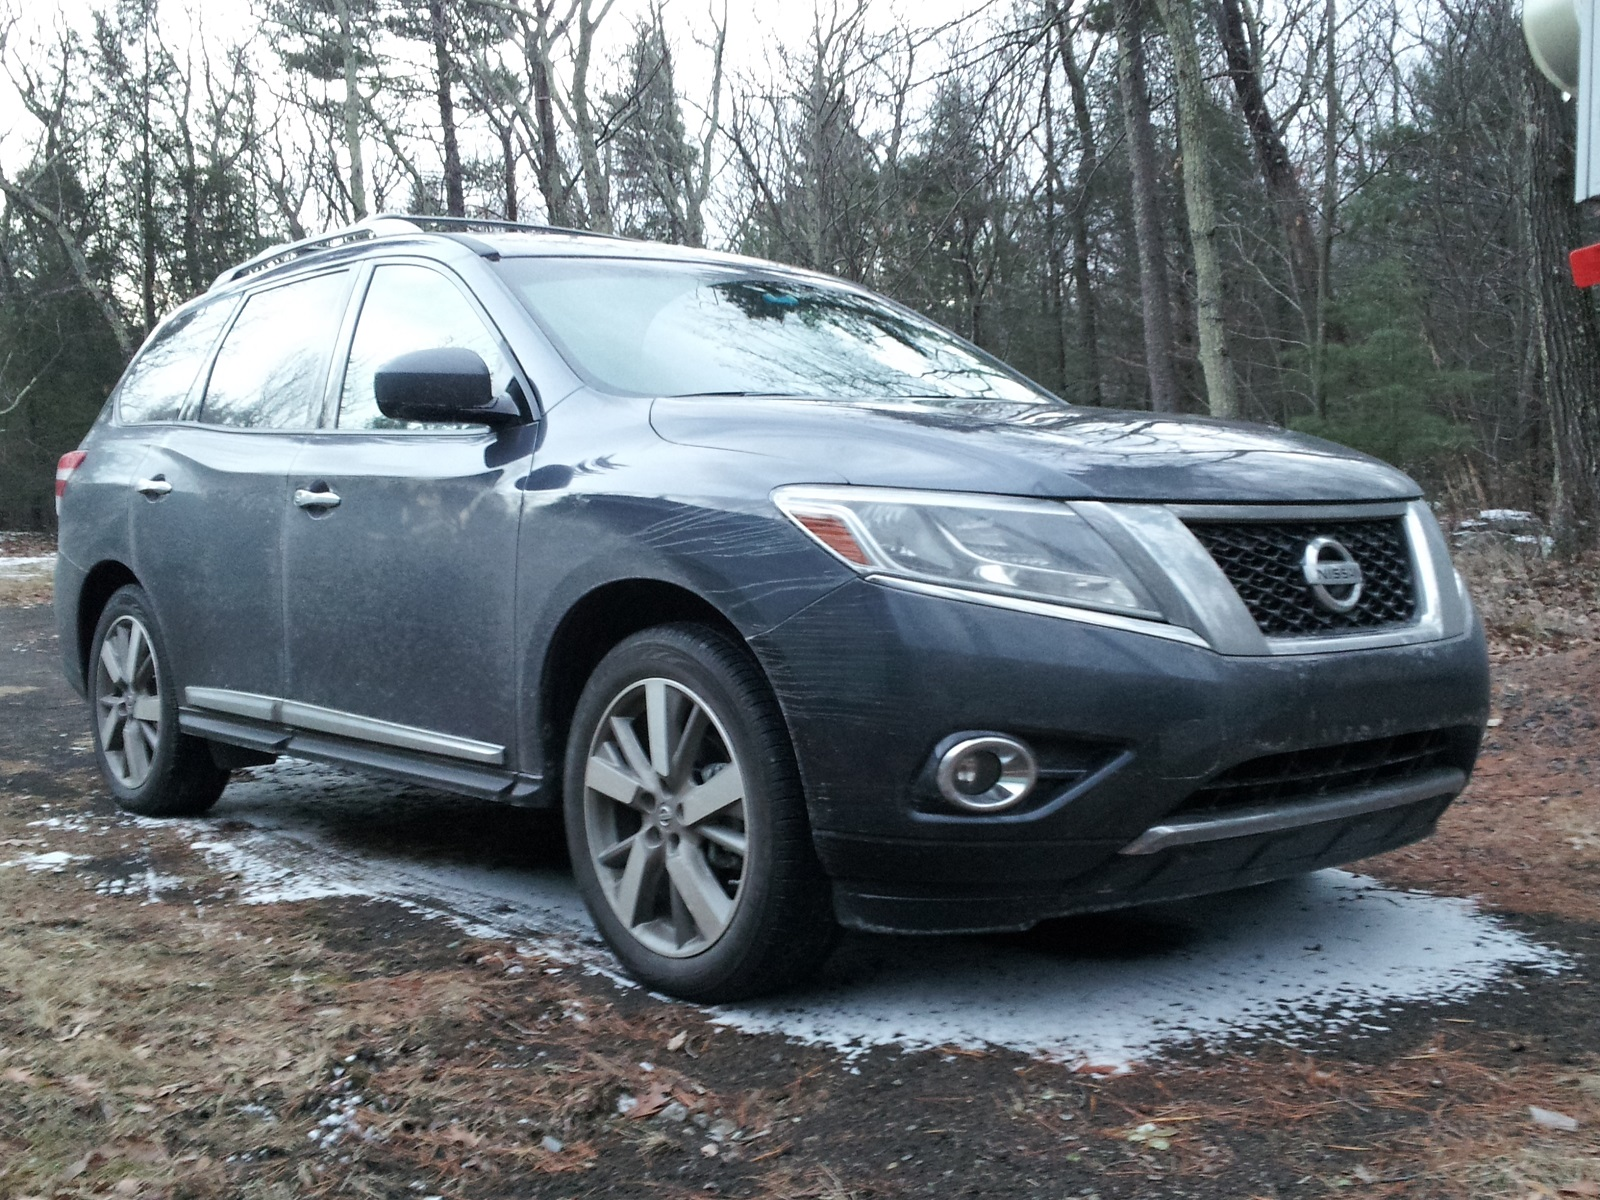 Used Nissan Pathfinder For Sale >> 2014 Nissan Pathfinder Hybrid: Gas Mileage Test Disappointing